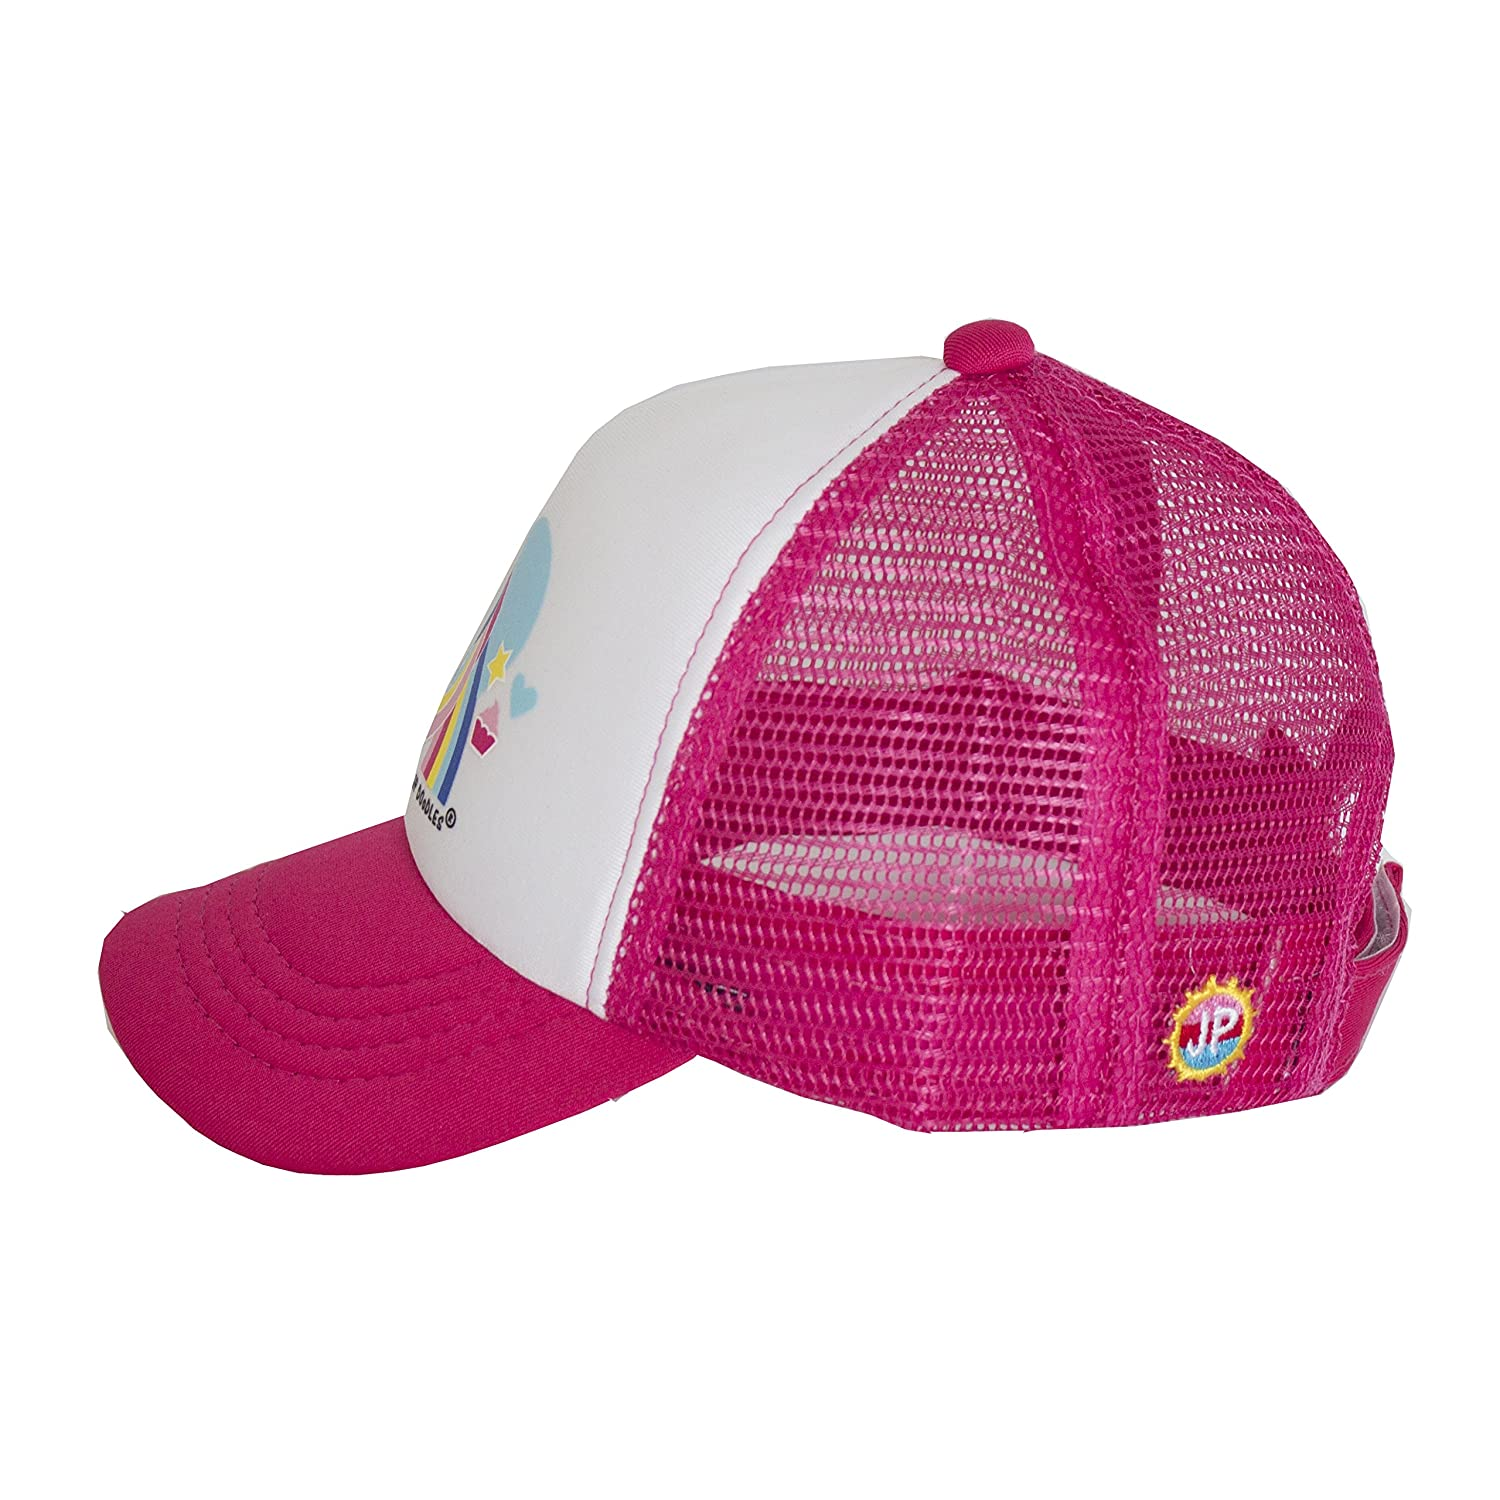 JP DOoDLES Unicorn on Kids Trucker Hat The Kids Baseball Cap is Available in Baby Toddler and Youth Sizes./…